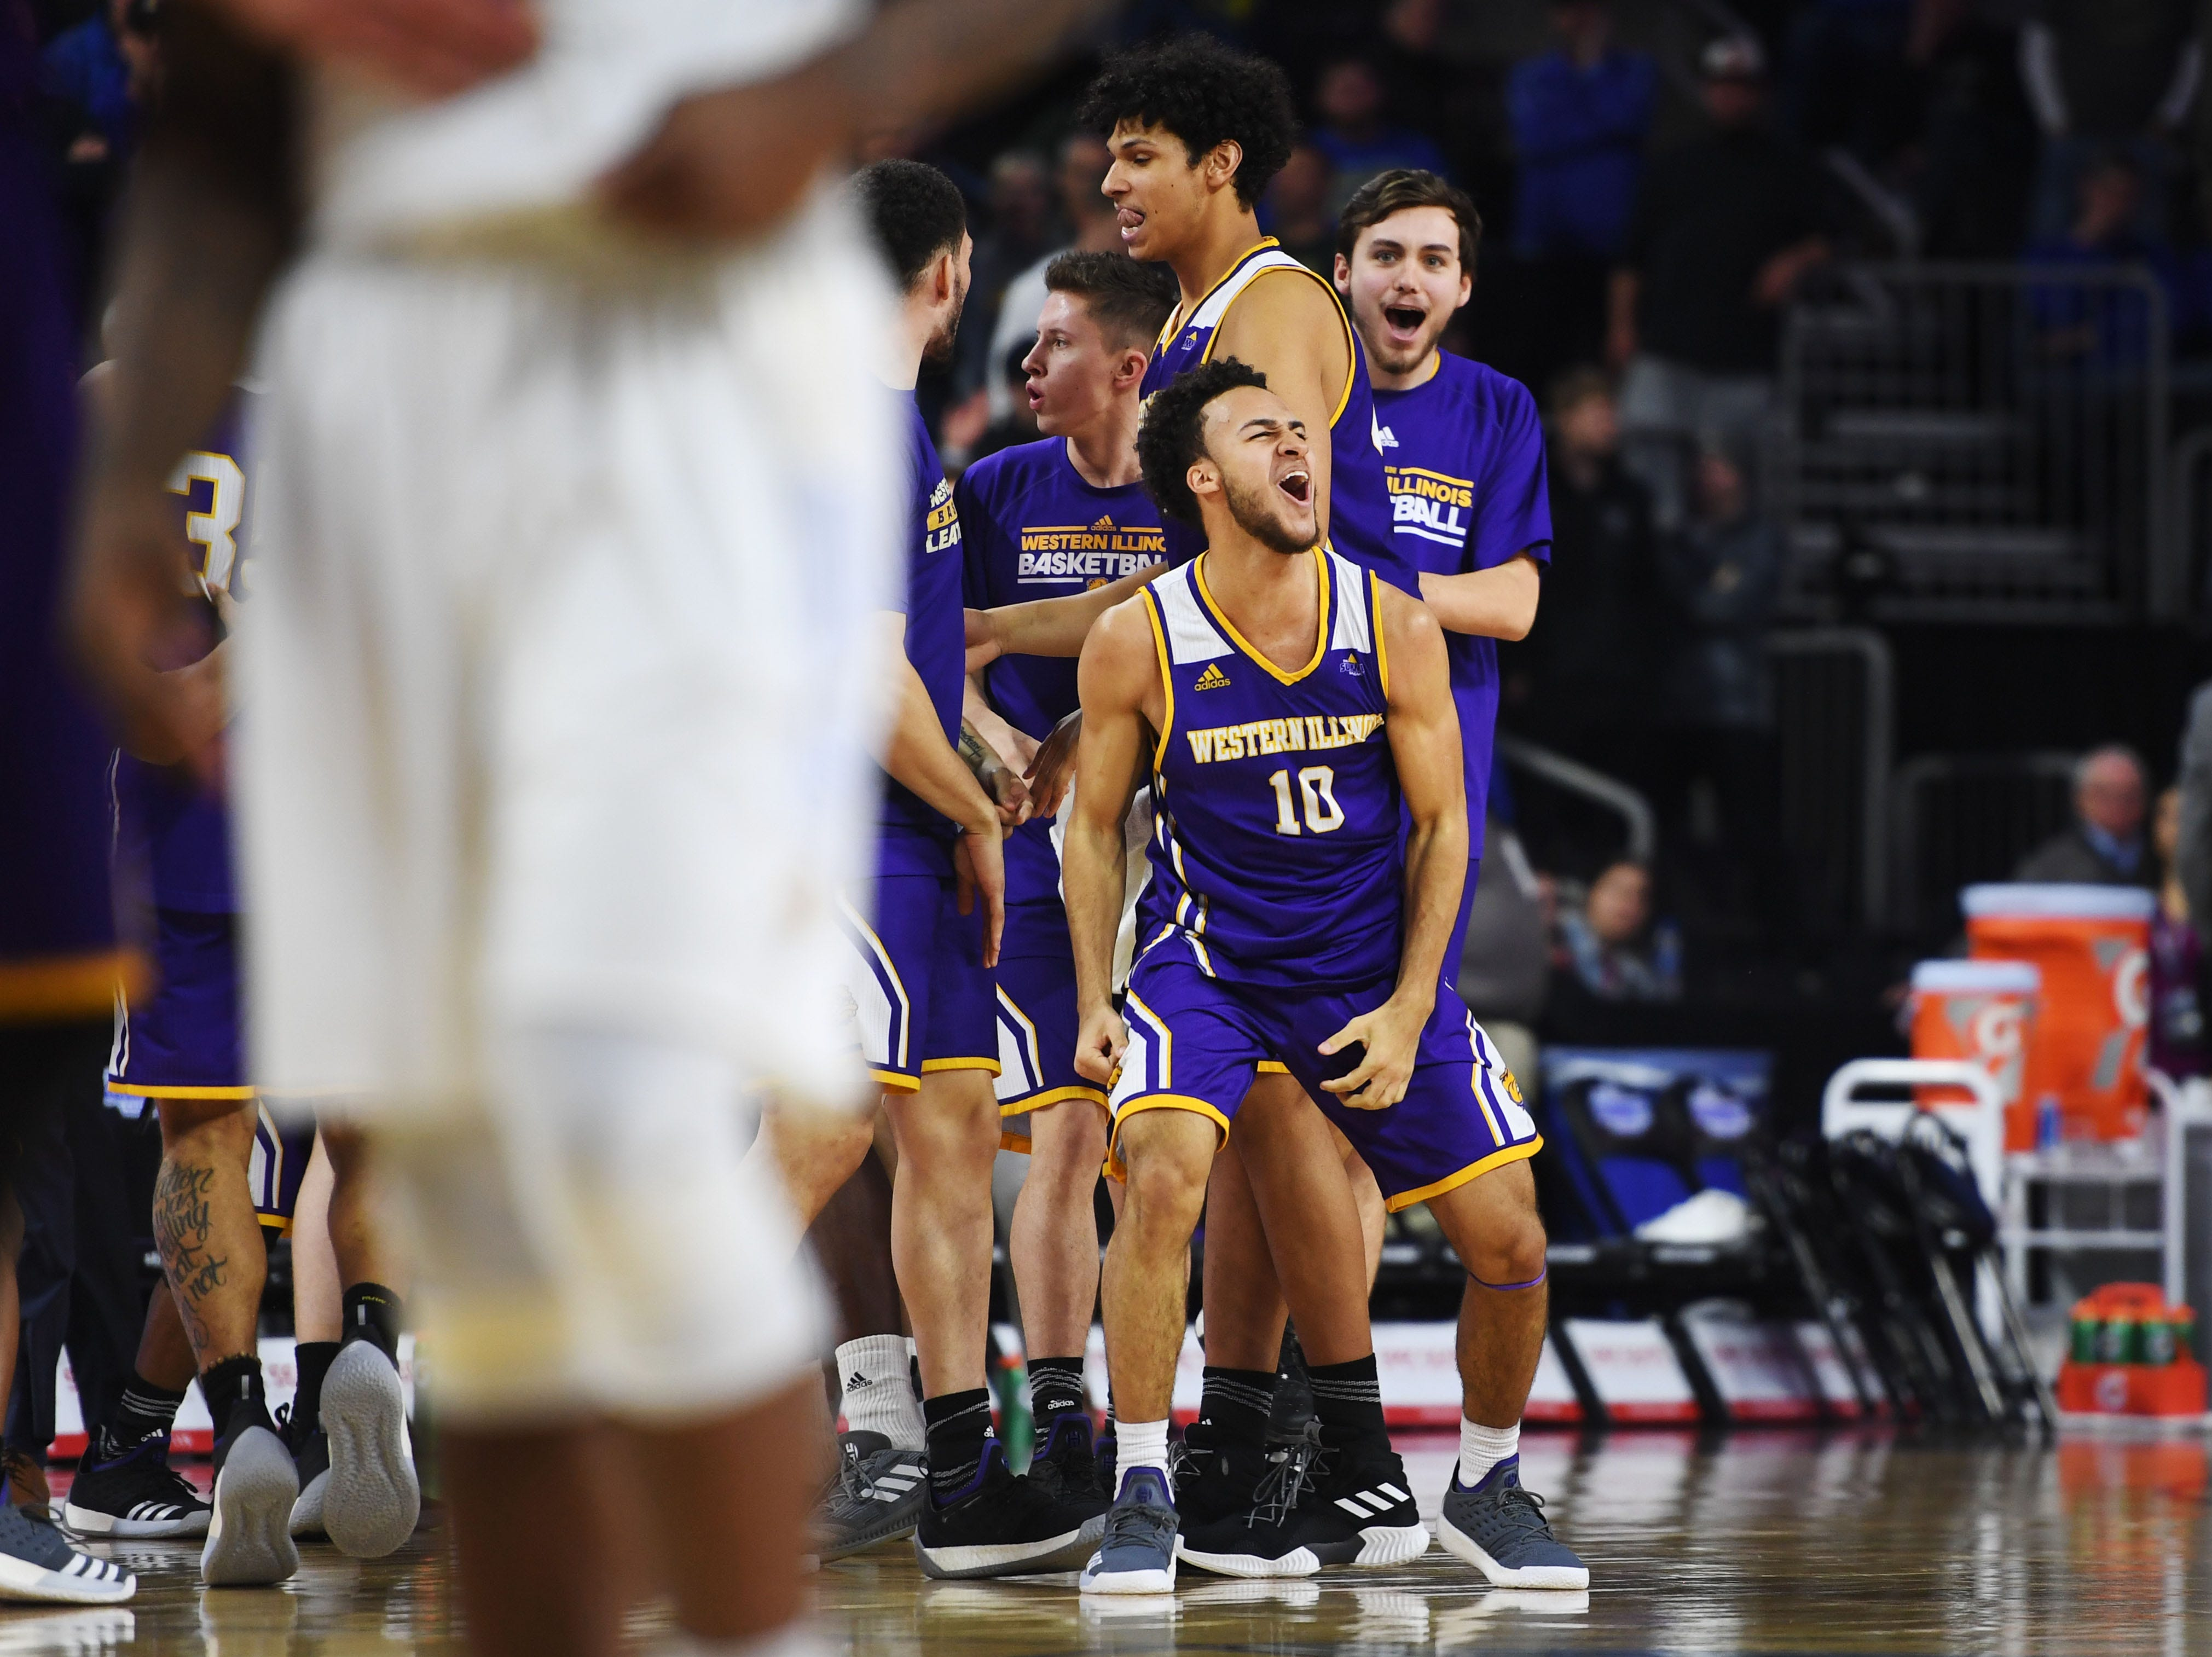 Western Illinois' Kobe Webster lets out a yell after their win against SDSU Saturday, March 9, in the Summit League tournament at the Denny Sanford Premier Center in Sioux Falls. Western Illinois won 79-76.